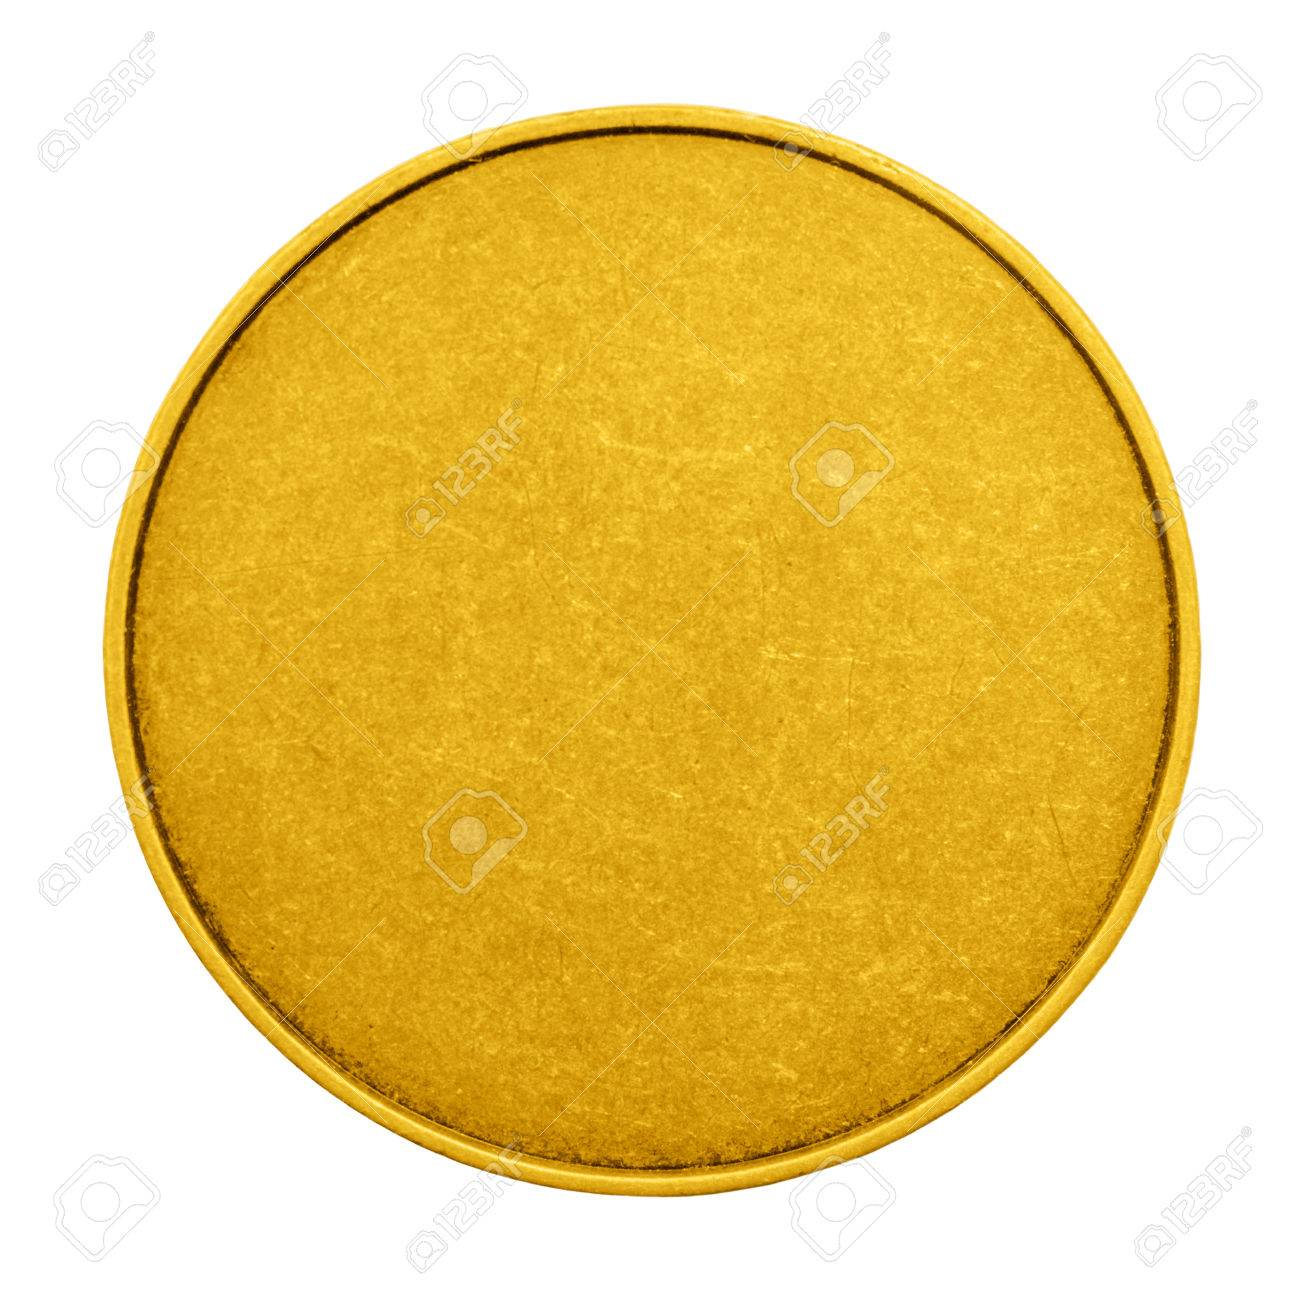 gold blank template for coins or medals metal texture stock photo